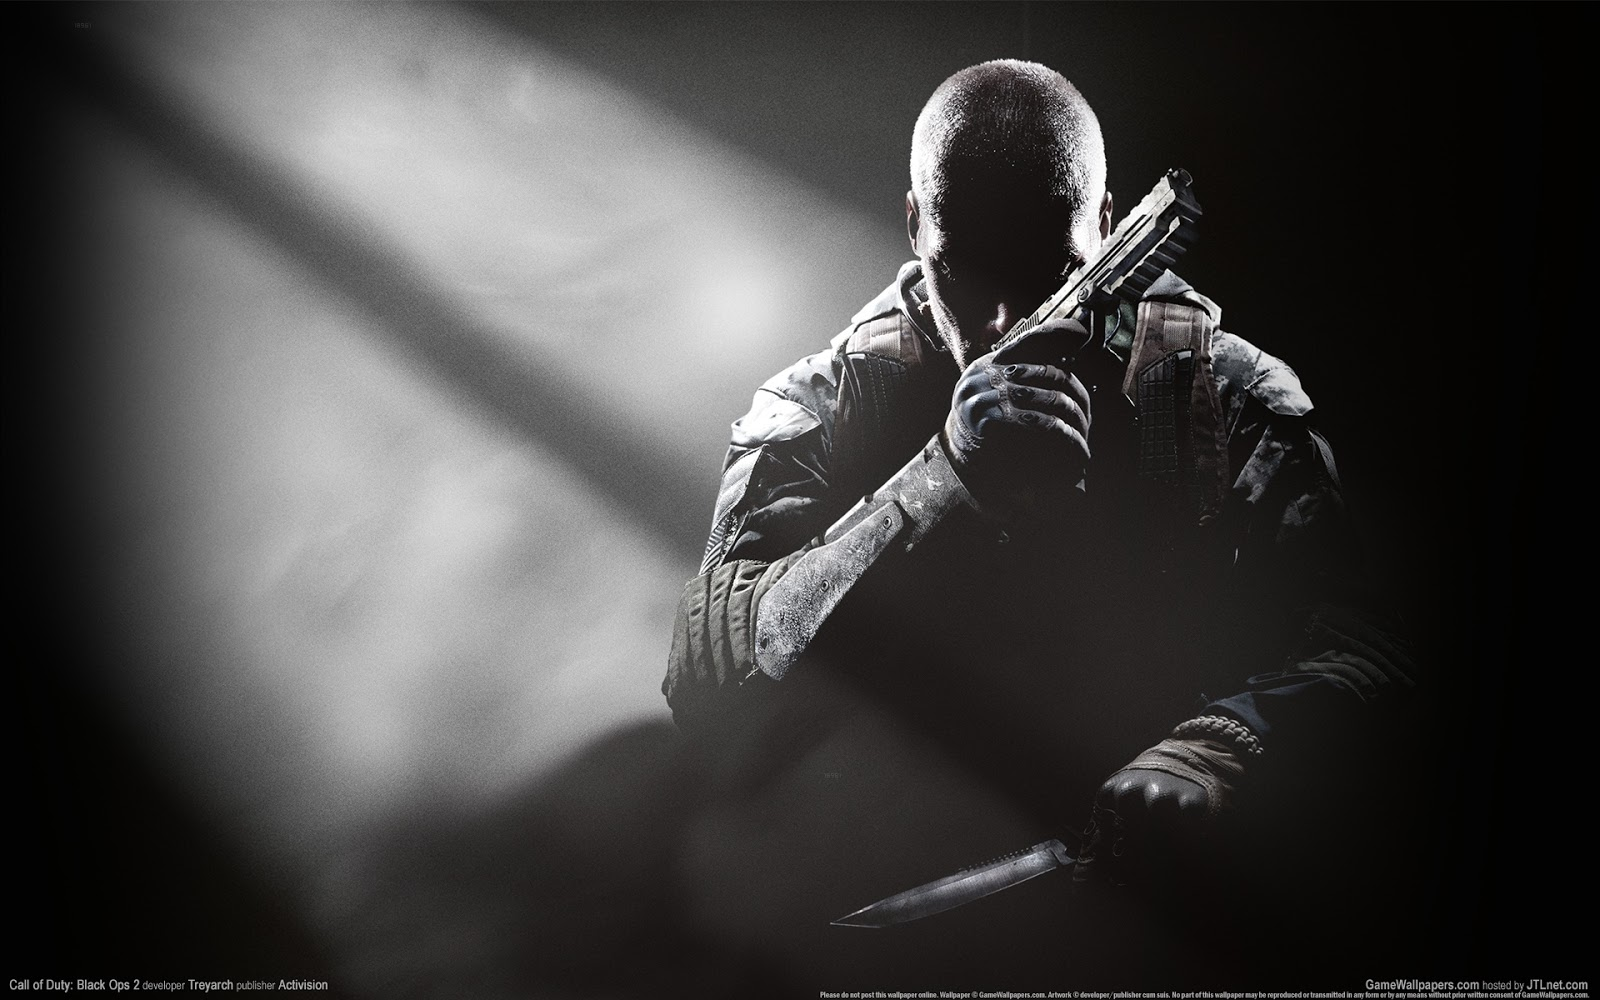 Call Of Duty Bo2 Wallpaper: CALL OF DUTY HD WALLPAPERS 1920x1080